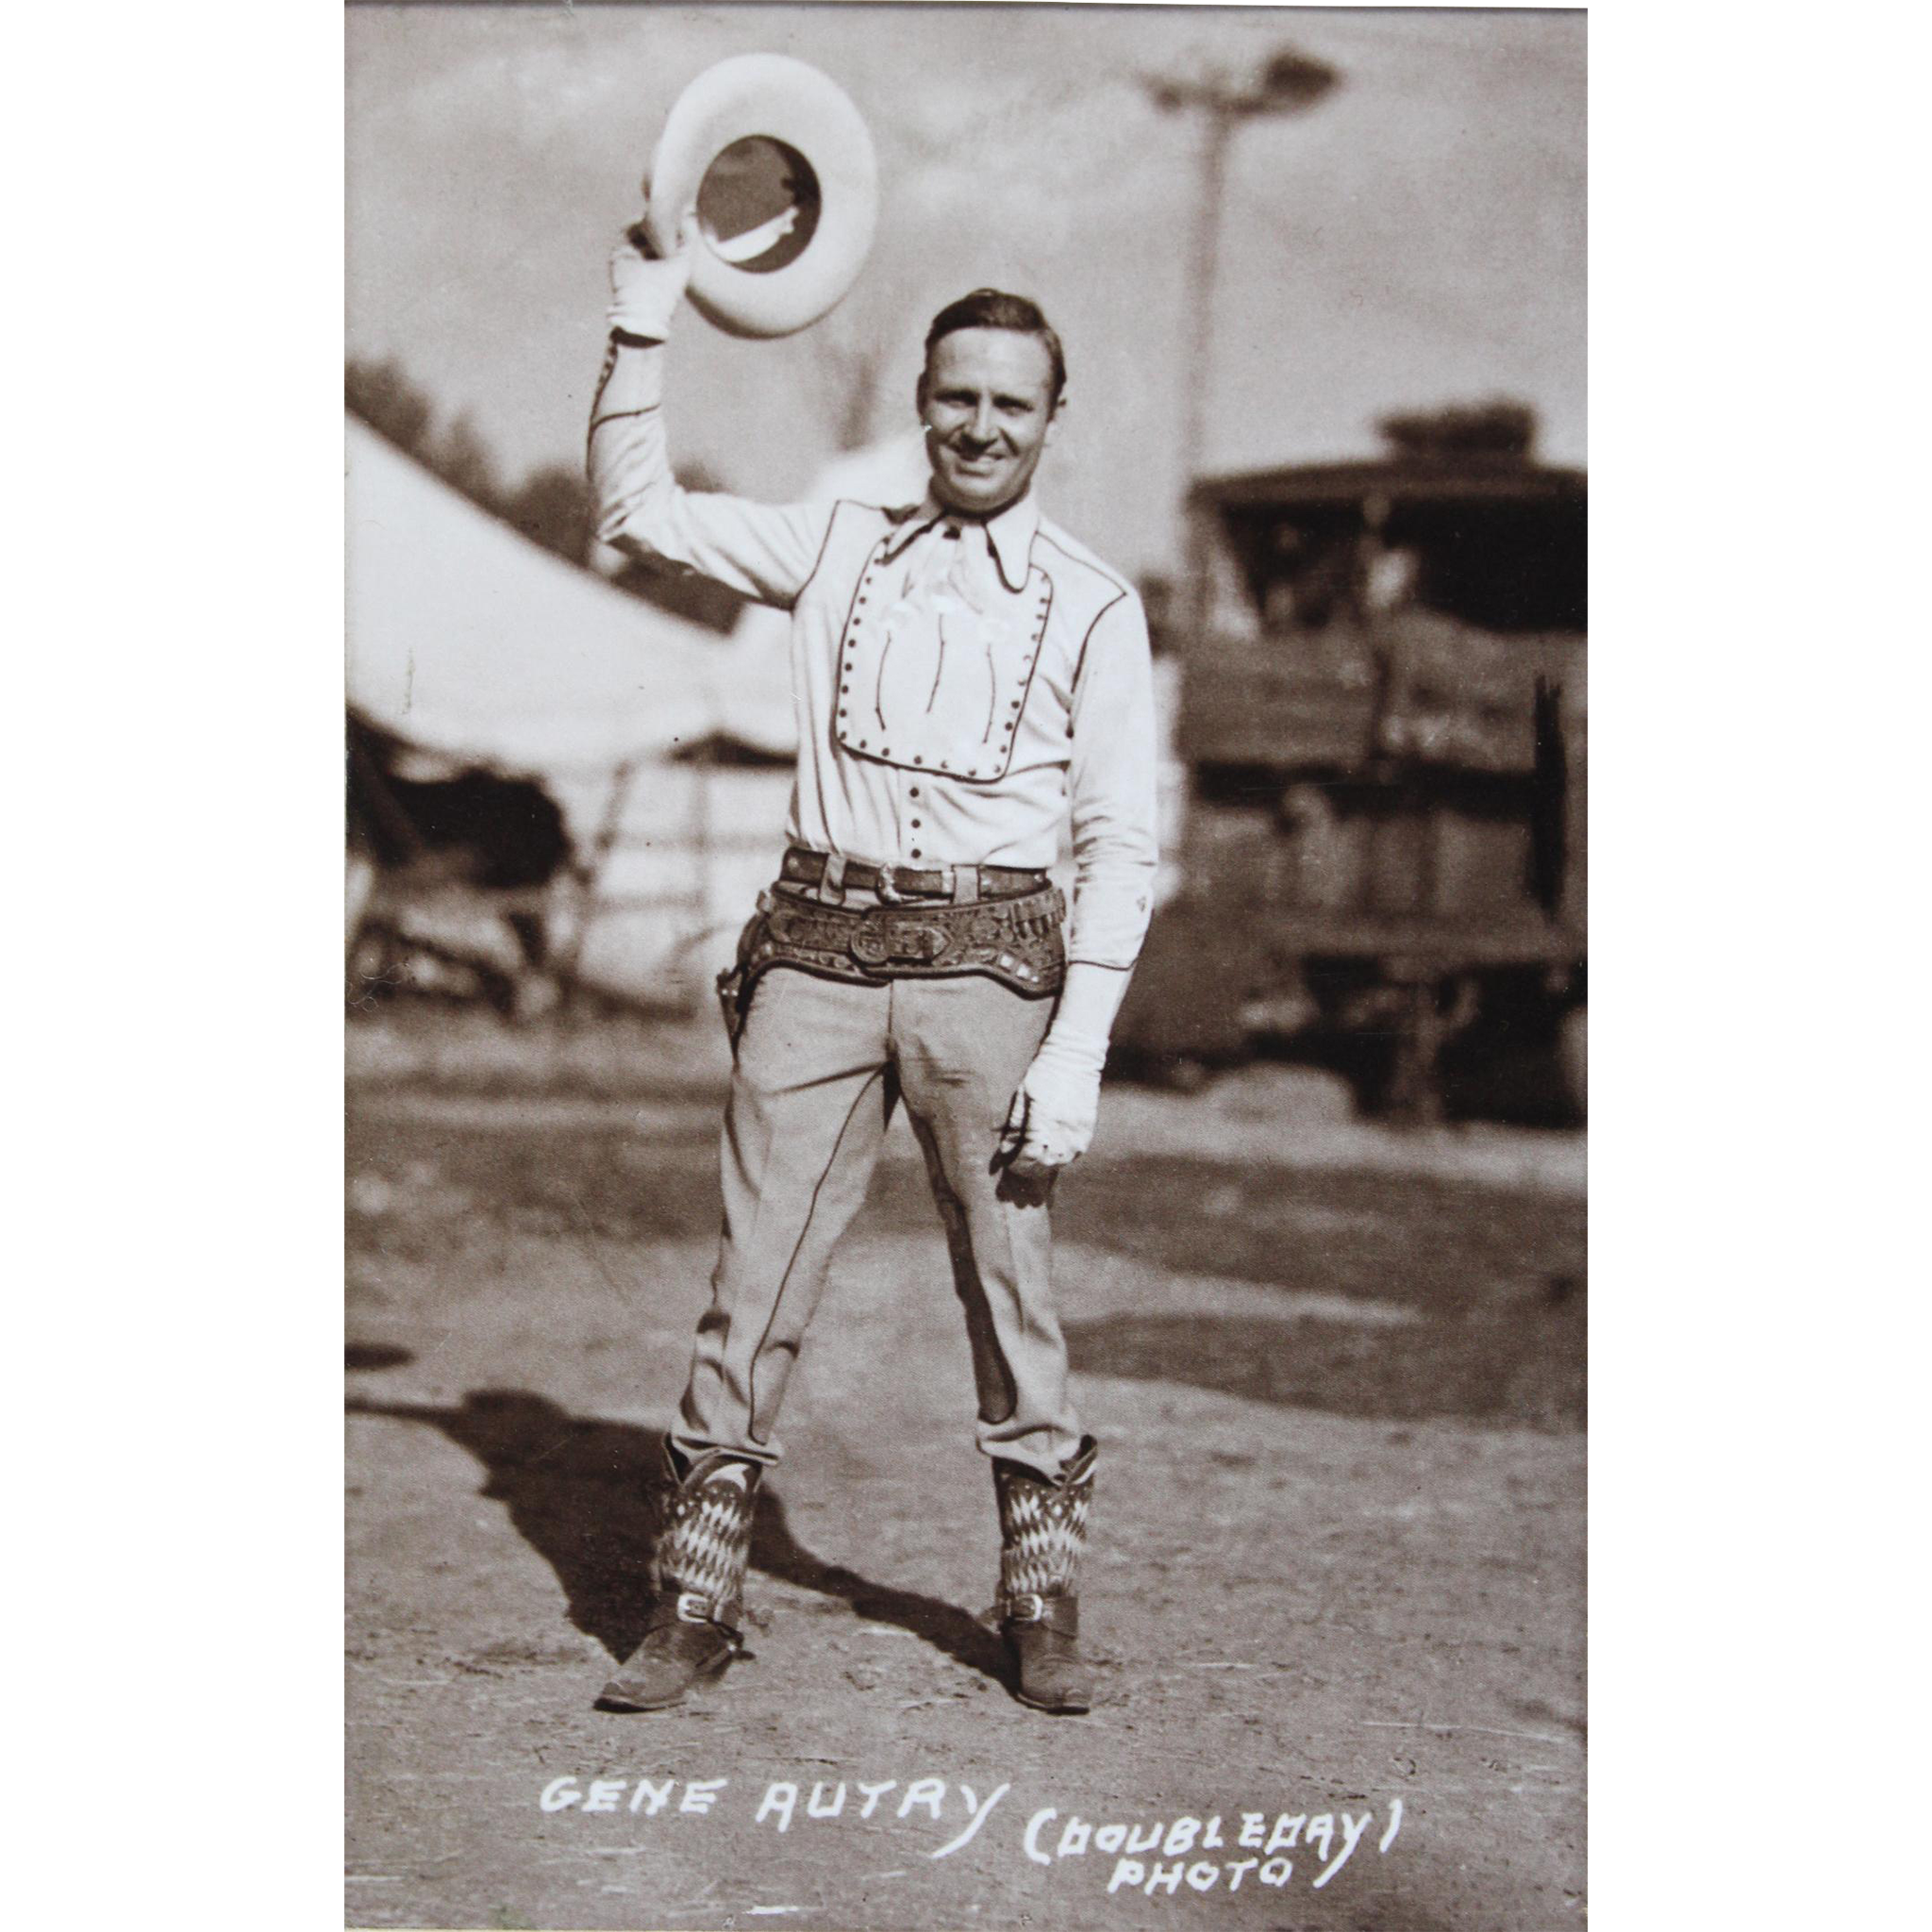 Sepia Tone Singing Cowboy Gene Autry Signed Photograph